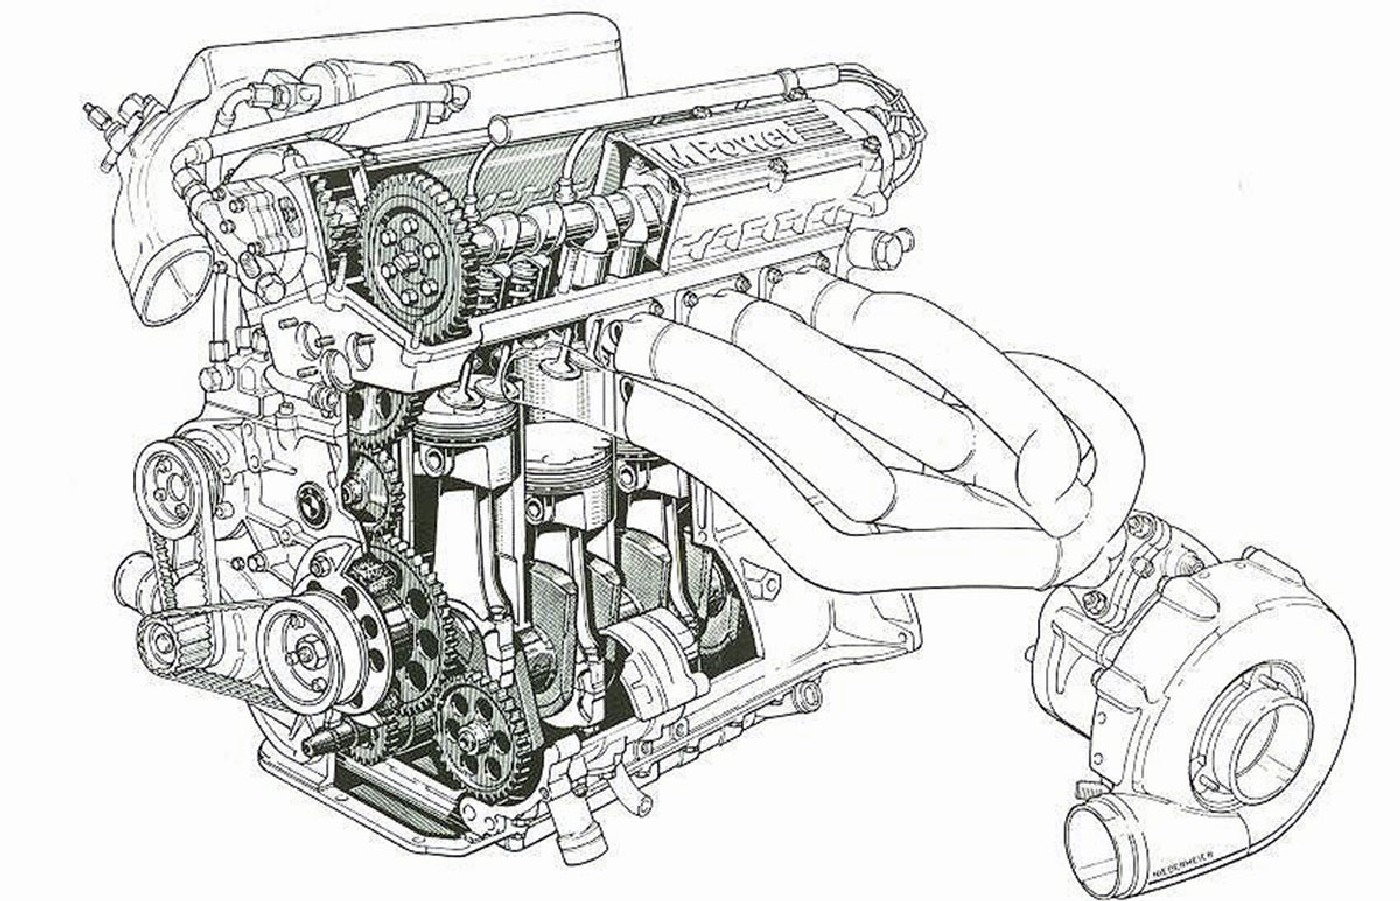 1986 Bmw 535i Engine Diagram | Wiring Liry  Bmw Engine Diagram on 2000 mitsubishi engine diagram, 2000 oldsmobile engine diagram, 2000 corvette engine diagram, 2000 jeep engine diagram, 2000 hyundai engine diagram, 2000 camaro engine diagram, 2000 kawasaki engine diagram, 2000 mazda miata engine diagram, 2000 ford engine diagram, 2000 honda engine diagram, 2000 passat engine diagram, 2000 saturn engine diagram, 2000 daewoo engine diagram, 2000 volvo engine diagram, 2000 acura engine diagram, 2000 chrysler engine diagram, 2000 range rover engine diagram, 2000 dodge engine diagram, 2000 mustang engine diagram, 2000 toyota engine diagram,